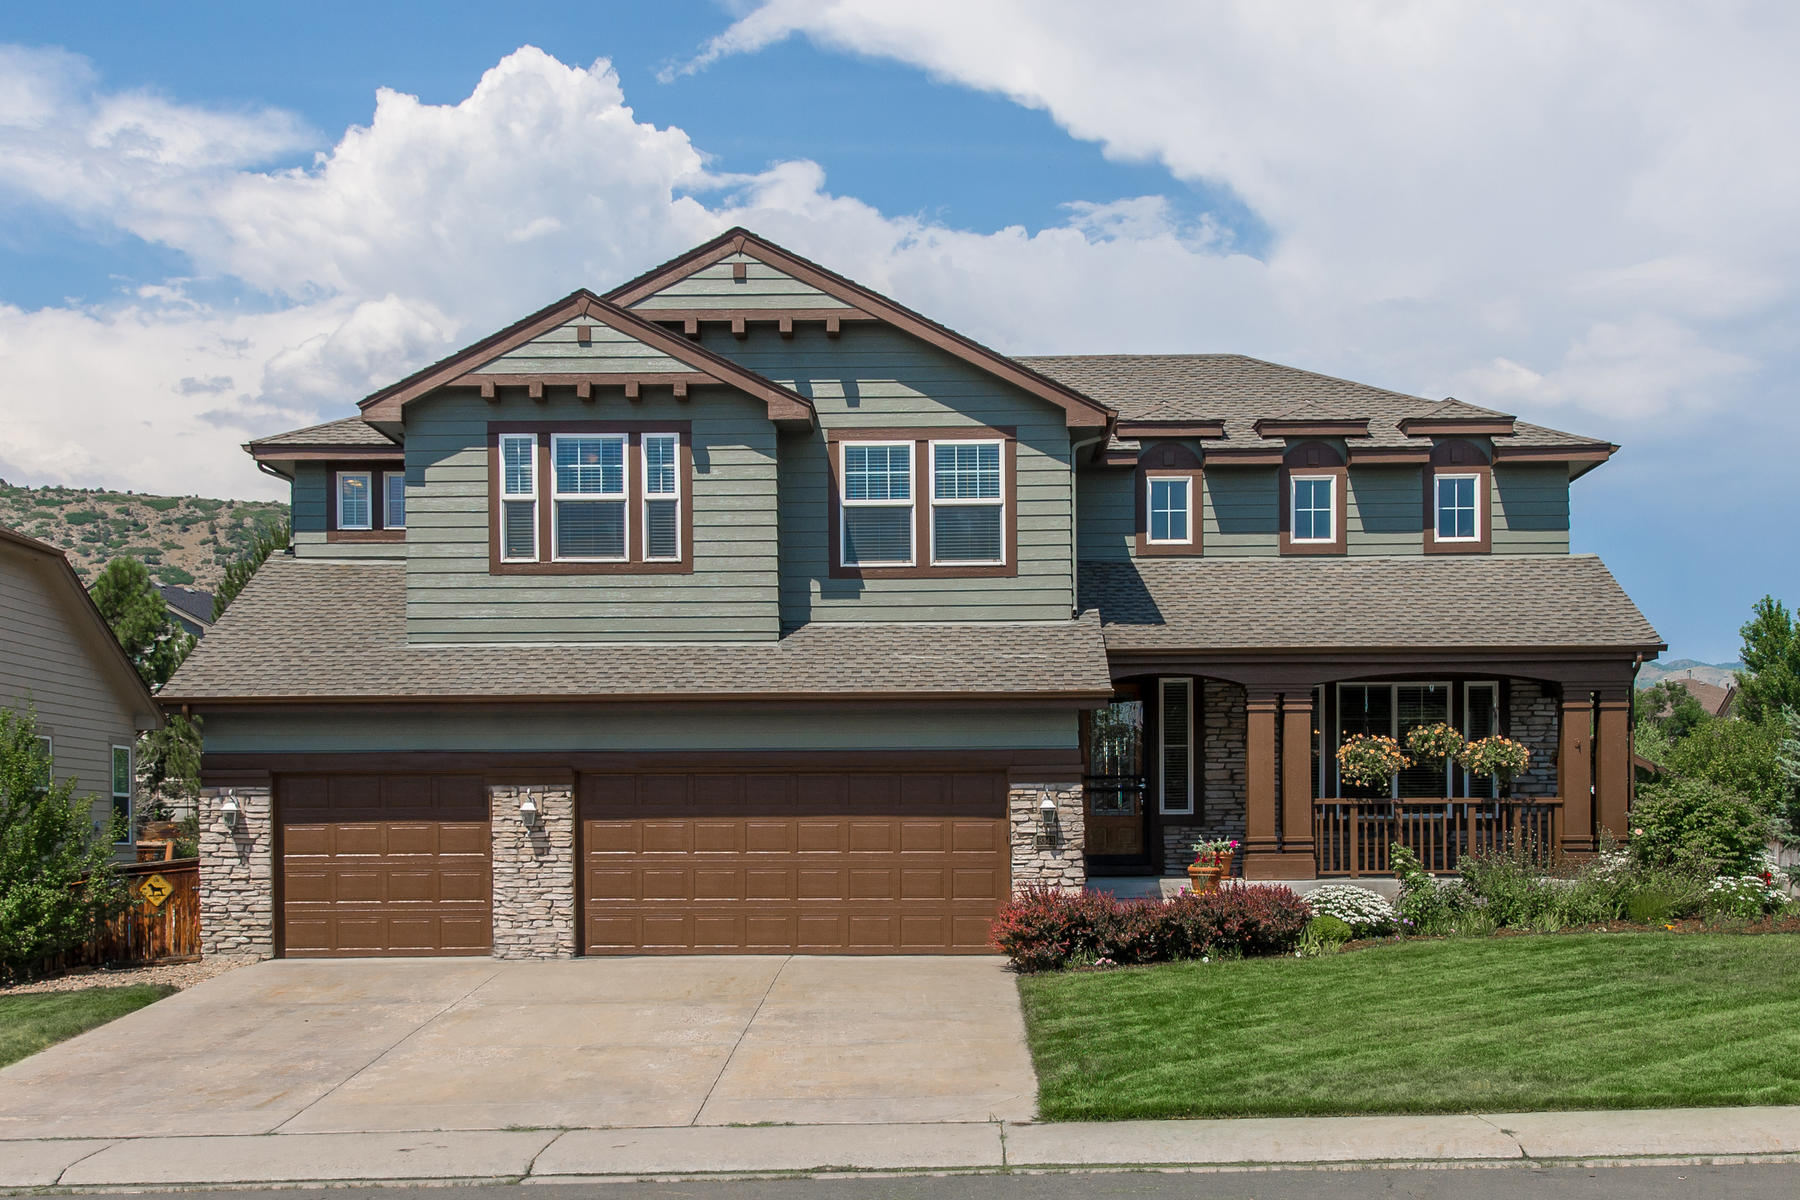 Single Family Home for Sale at One of the largest and most open floor plan currently being offered in Trailmark 9343 S Holland Way Littleton, Colorado, 80127 United States